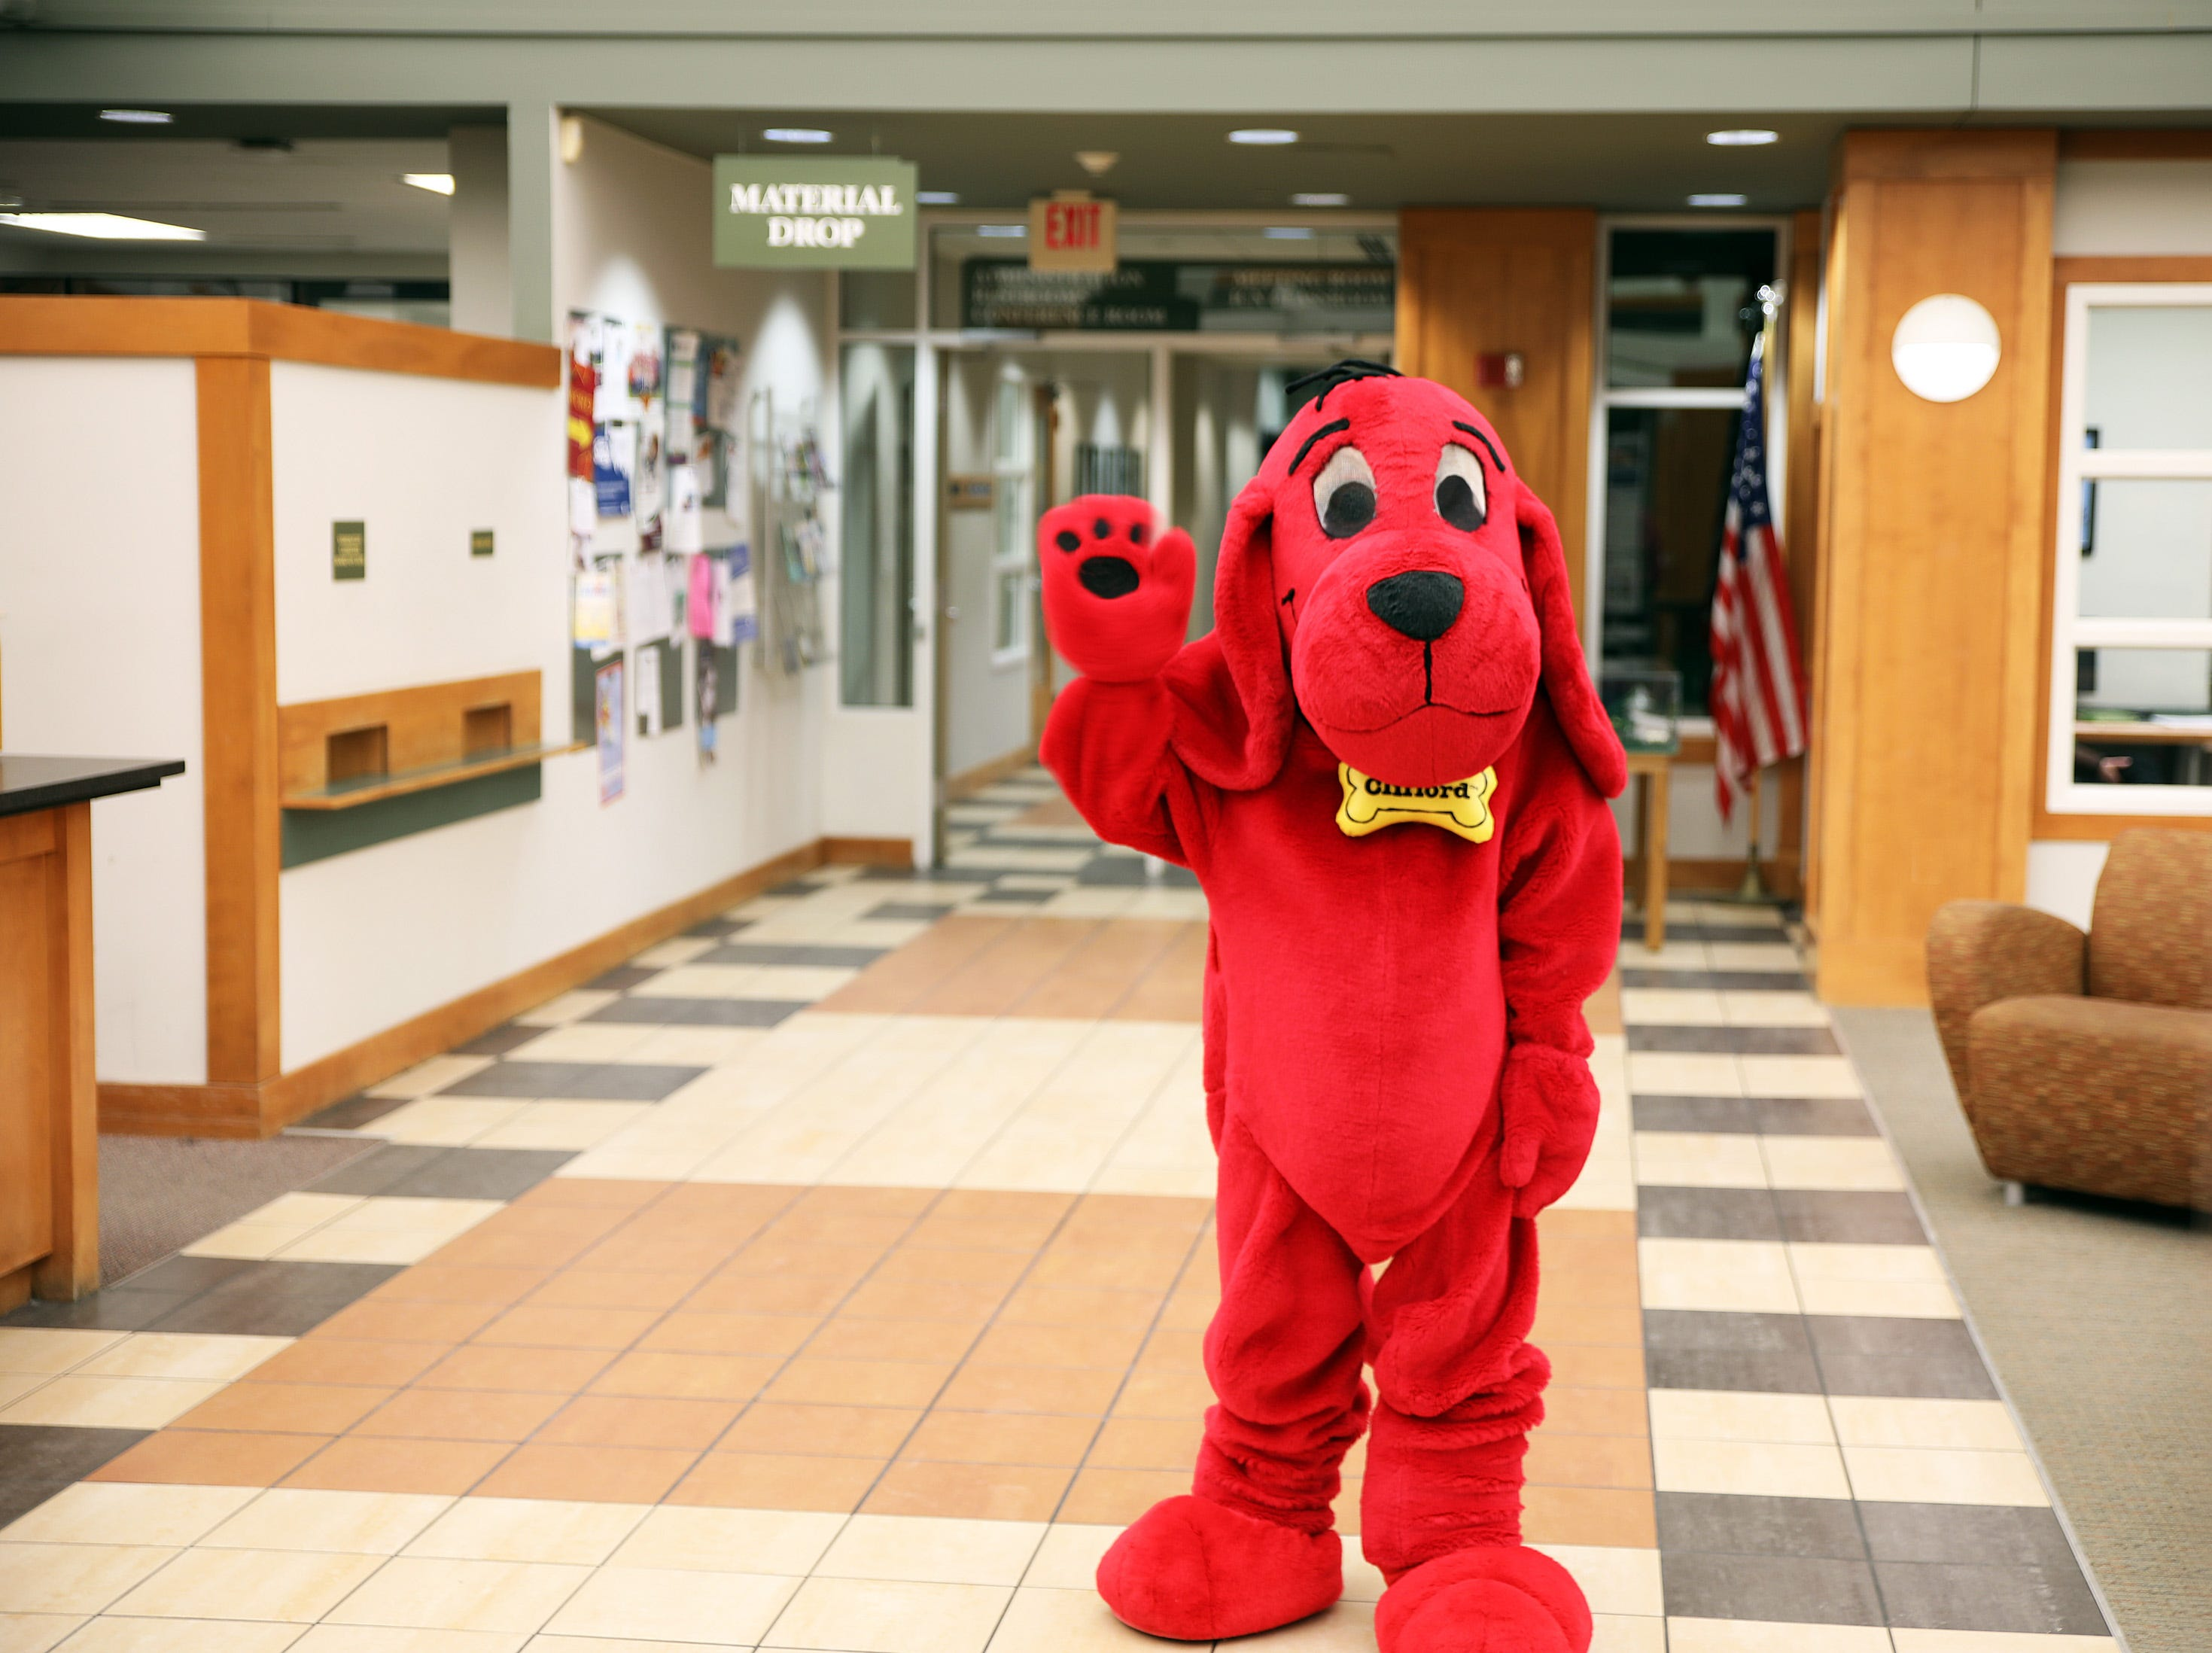 Clifford the Big Red Dog waves goodbye at the end of his birthday party at Kirkendall Public Library in Ankeny on Tuesday, February 5, 2019.